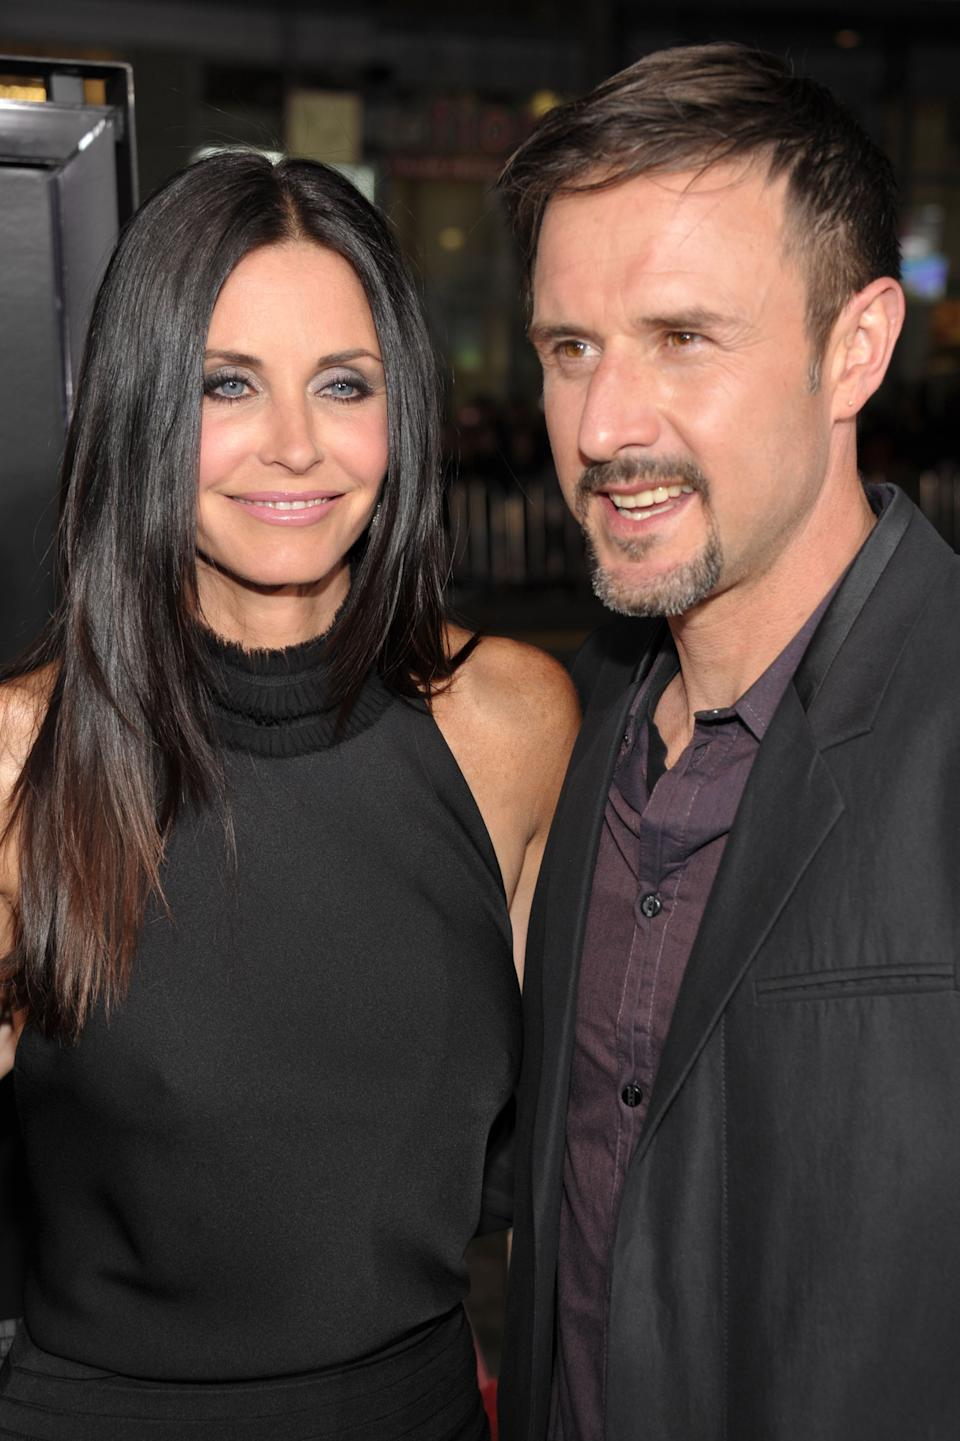 """Actors Courteney Cox and David Arquette arrive at the world premiere of The Weinstein Company's """"Scream 4"""" presented by AXE Shower at Grauman's Chinese Theatre on April 11, 2011 in Hollywood, California."""